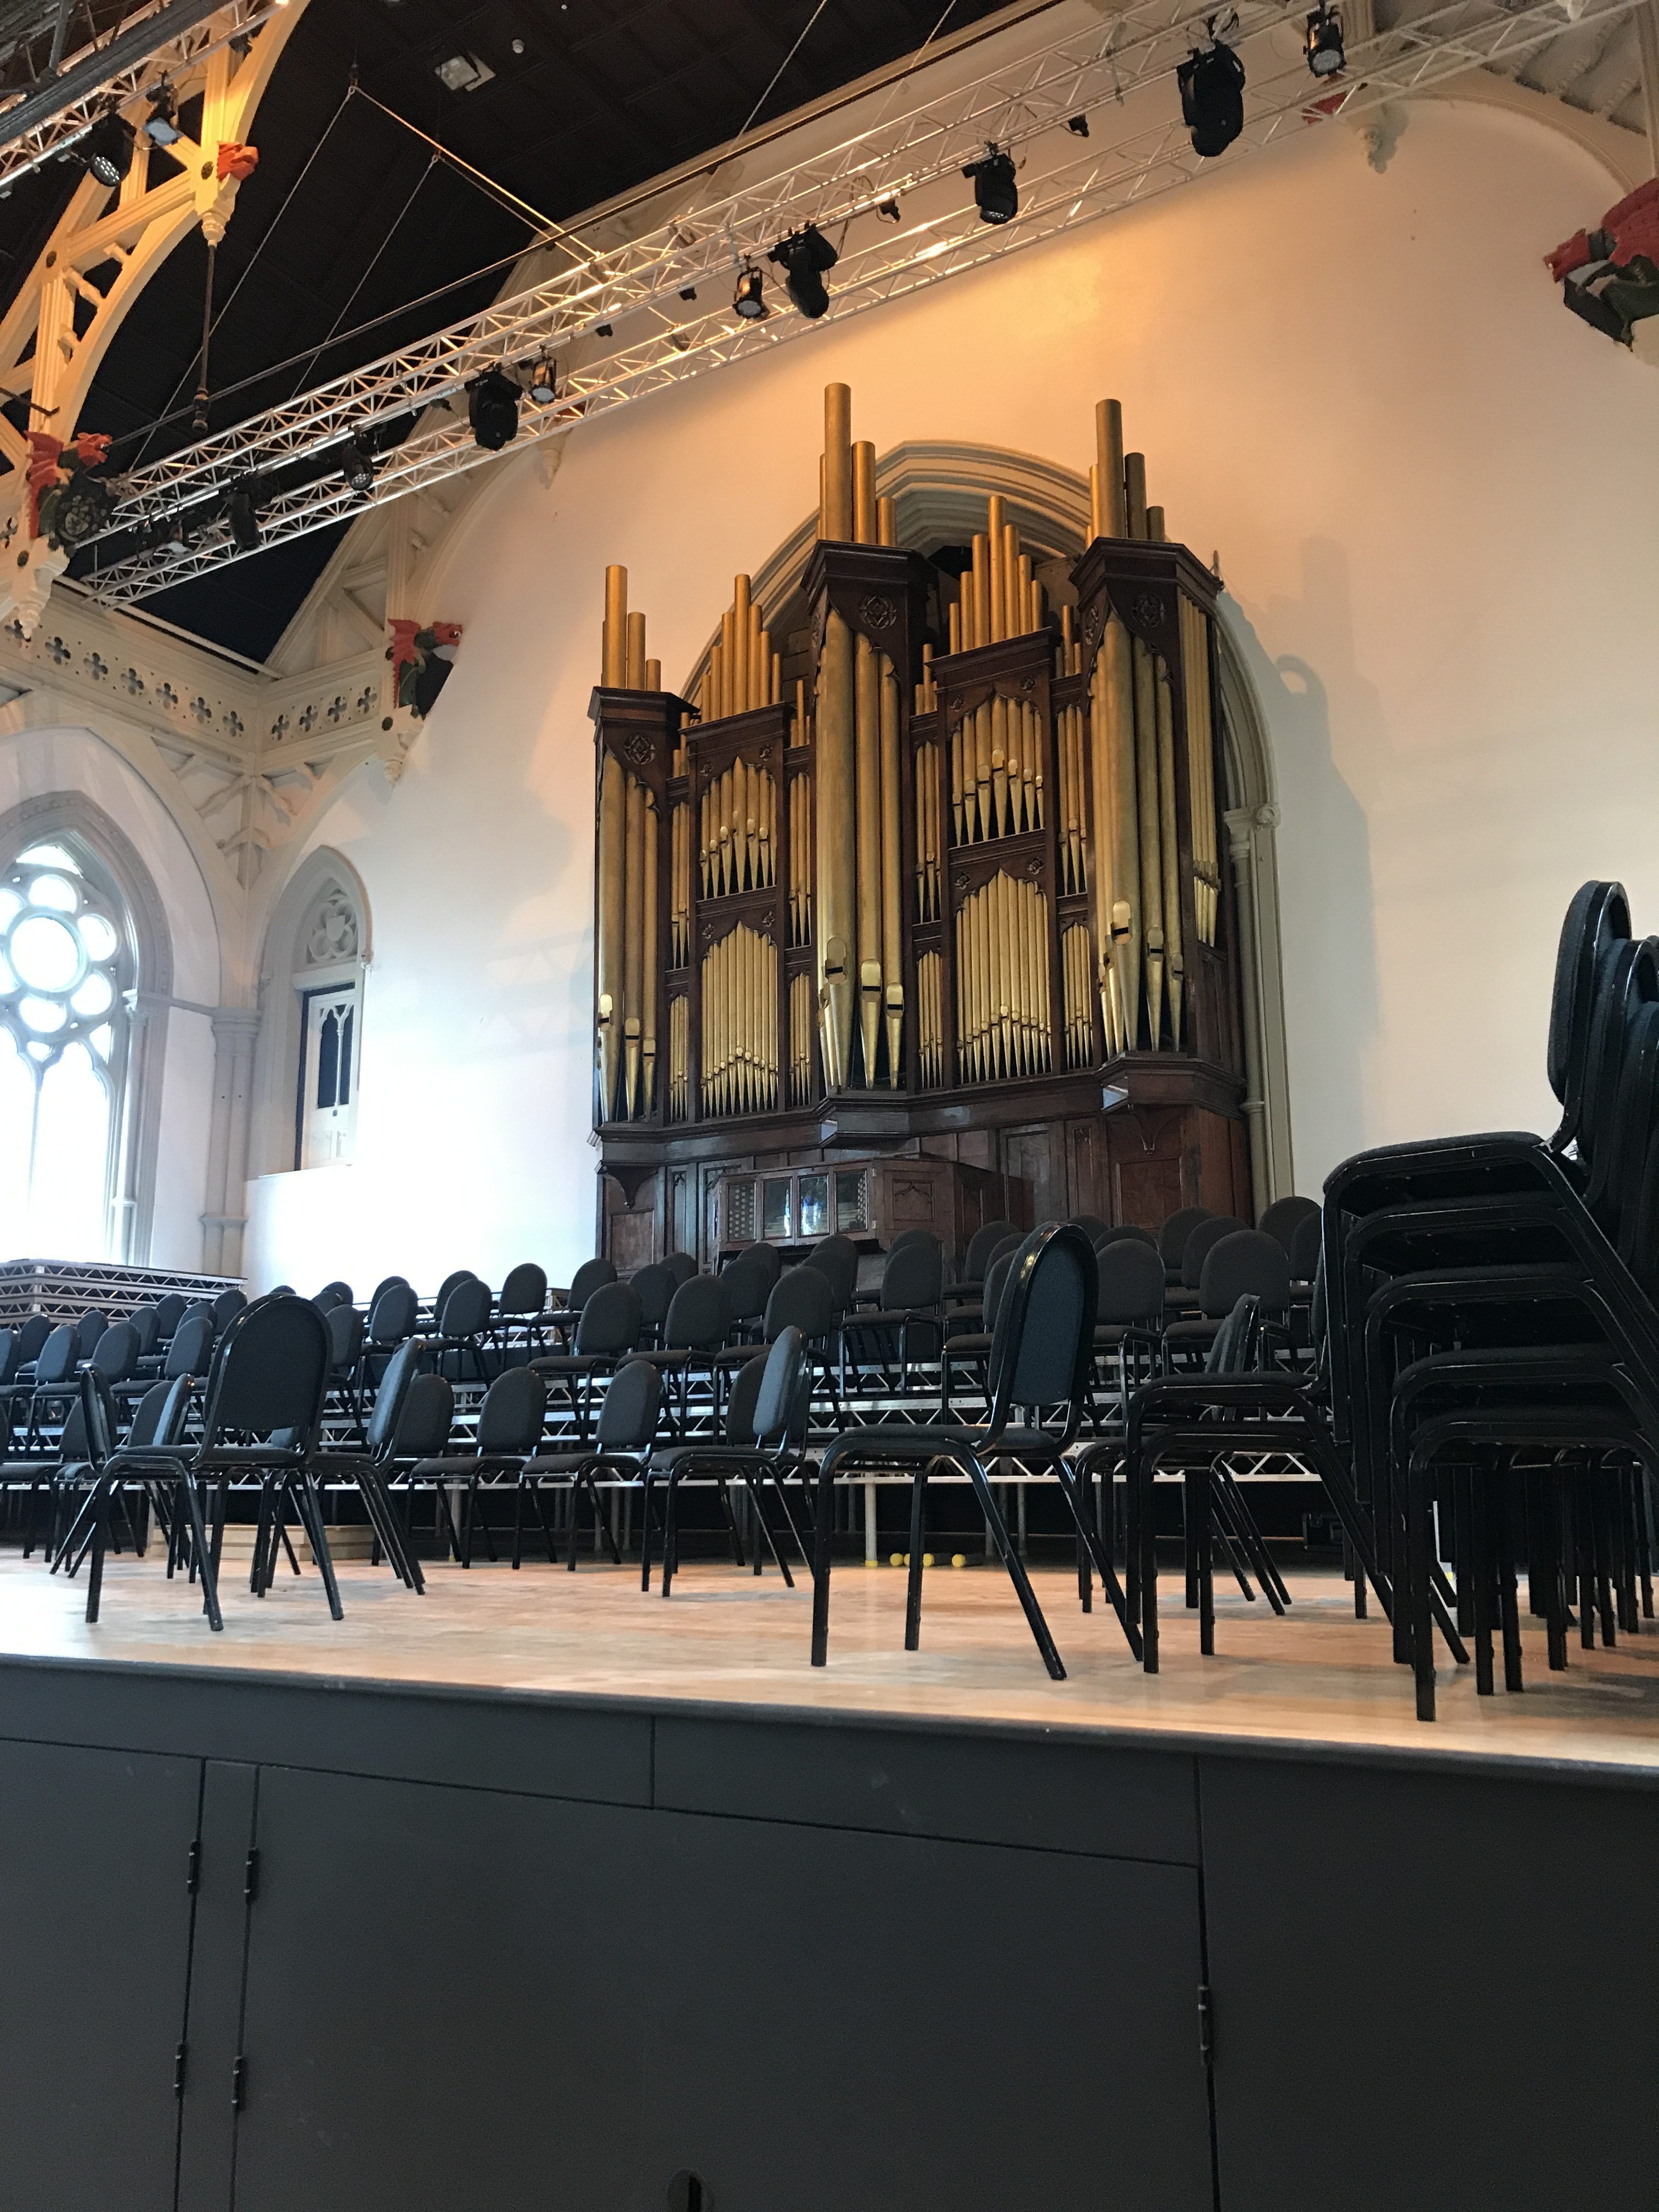 northern-niche-middlesbrough-town-hall-main-hall-3